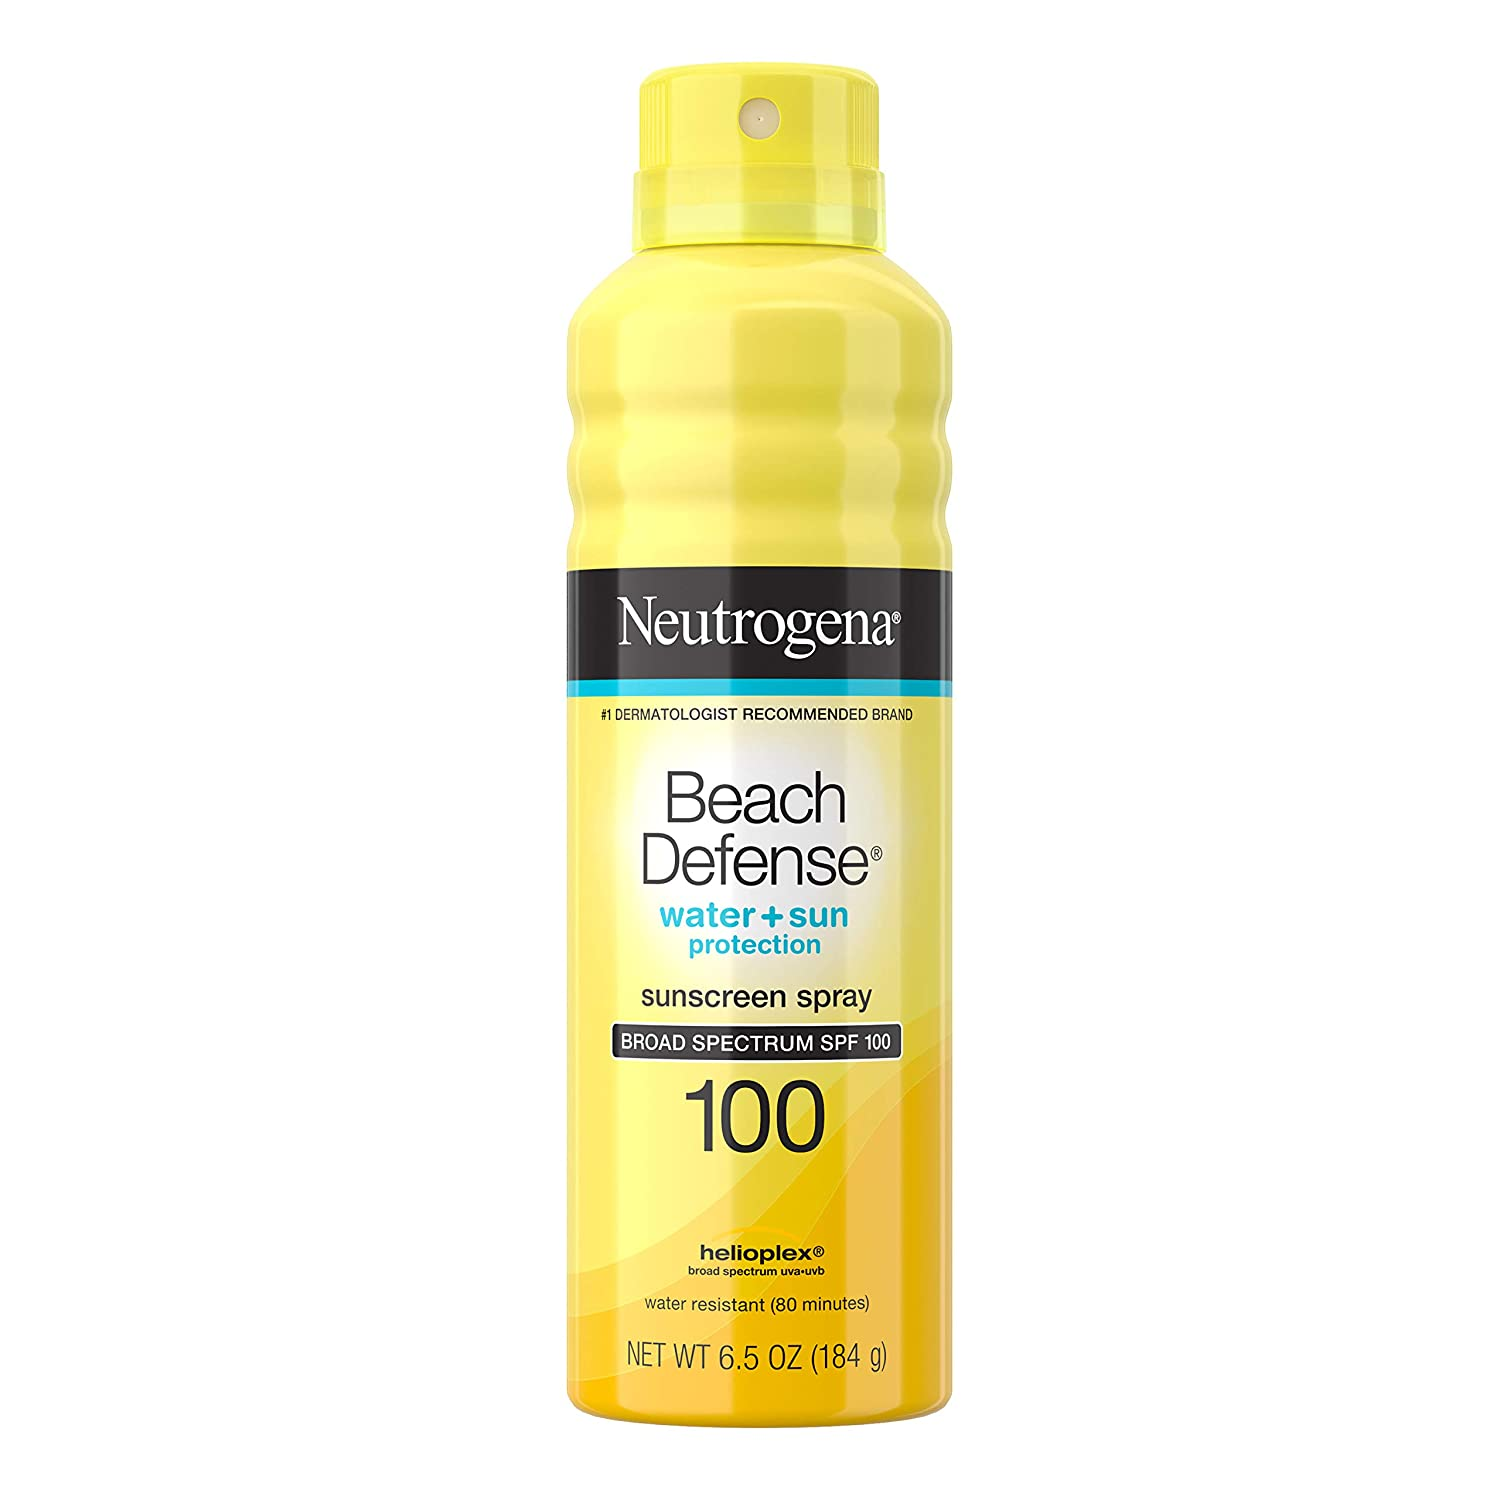 Neutrogena Beach Defense Body Spray Sunscreen with Broad Spectrum SPF 100, Water-Resistant and Oil-Free Sun Protection, 6.5 oz